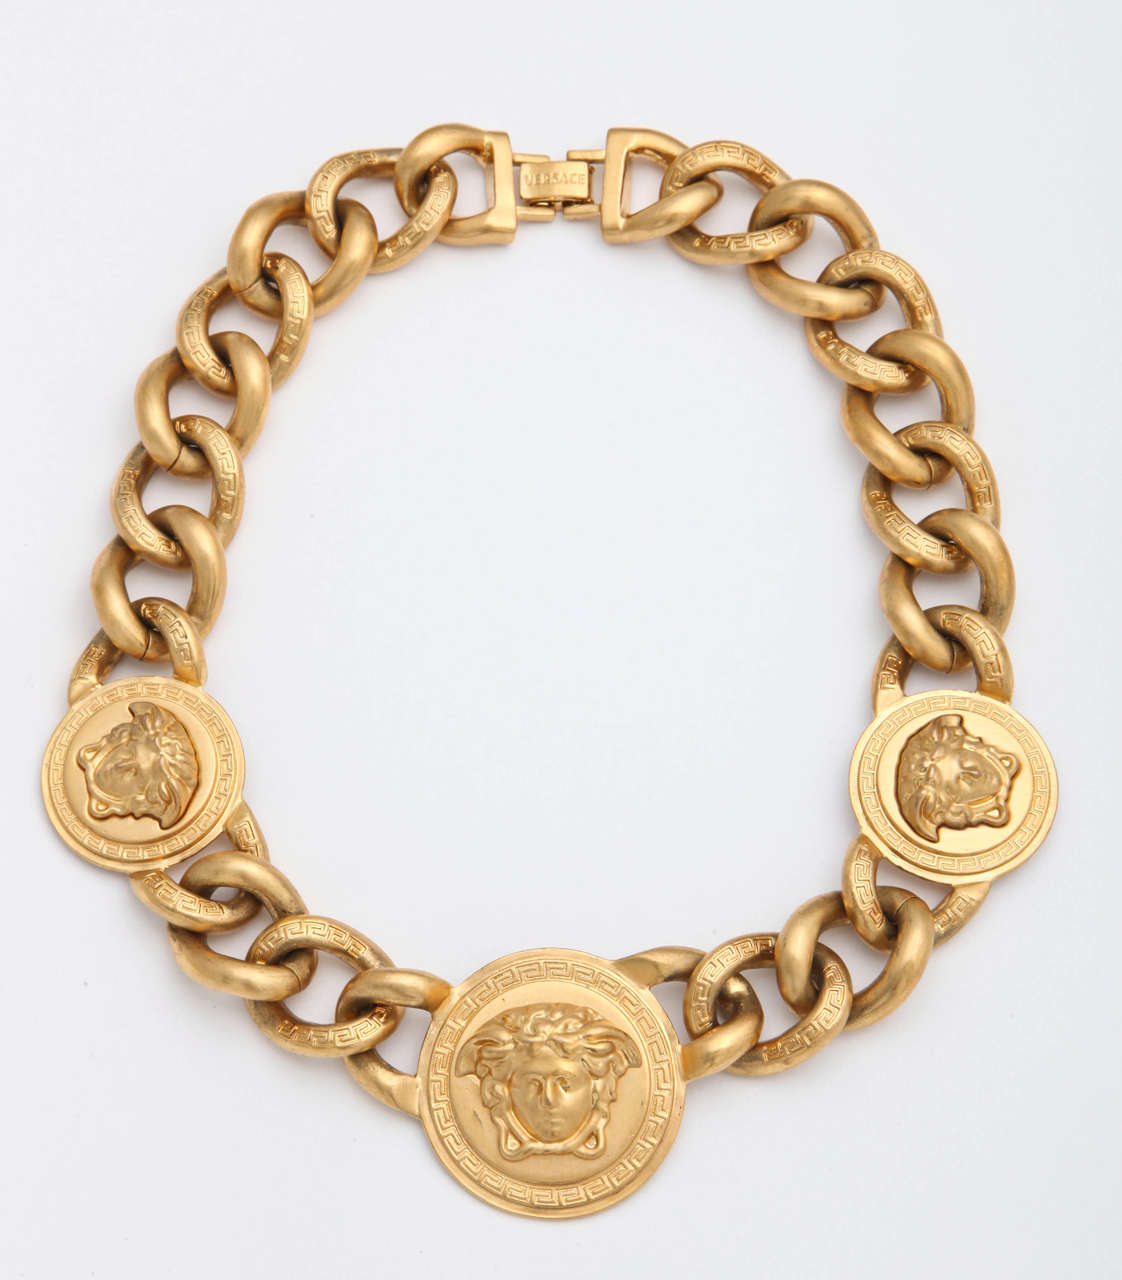 versace 3 medusa gold chain necklace at 1stdibs. Black Bedroom Furniture Sets. Home Design Ideas